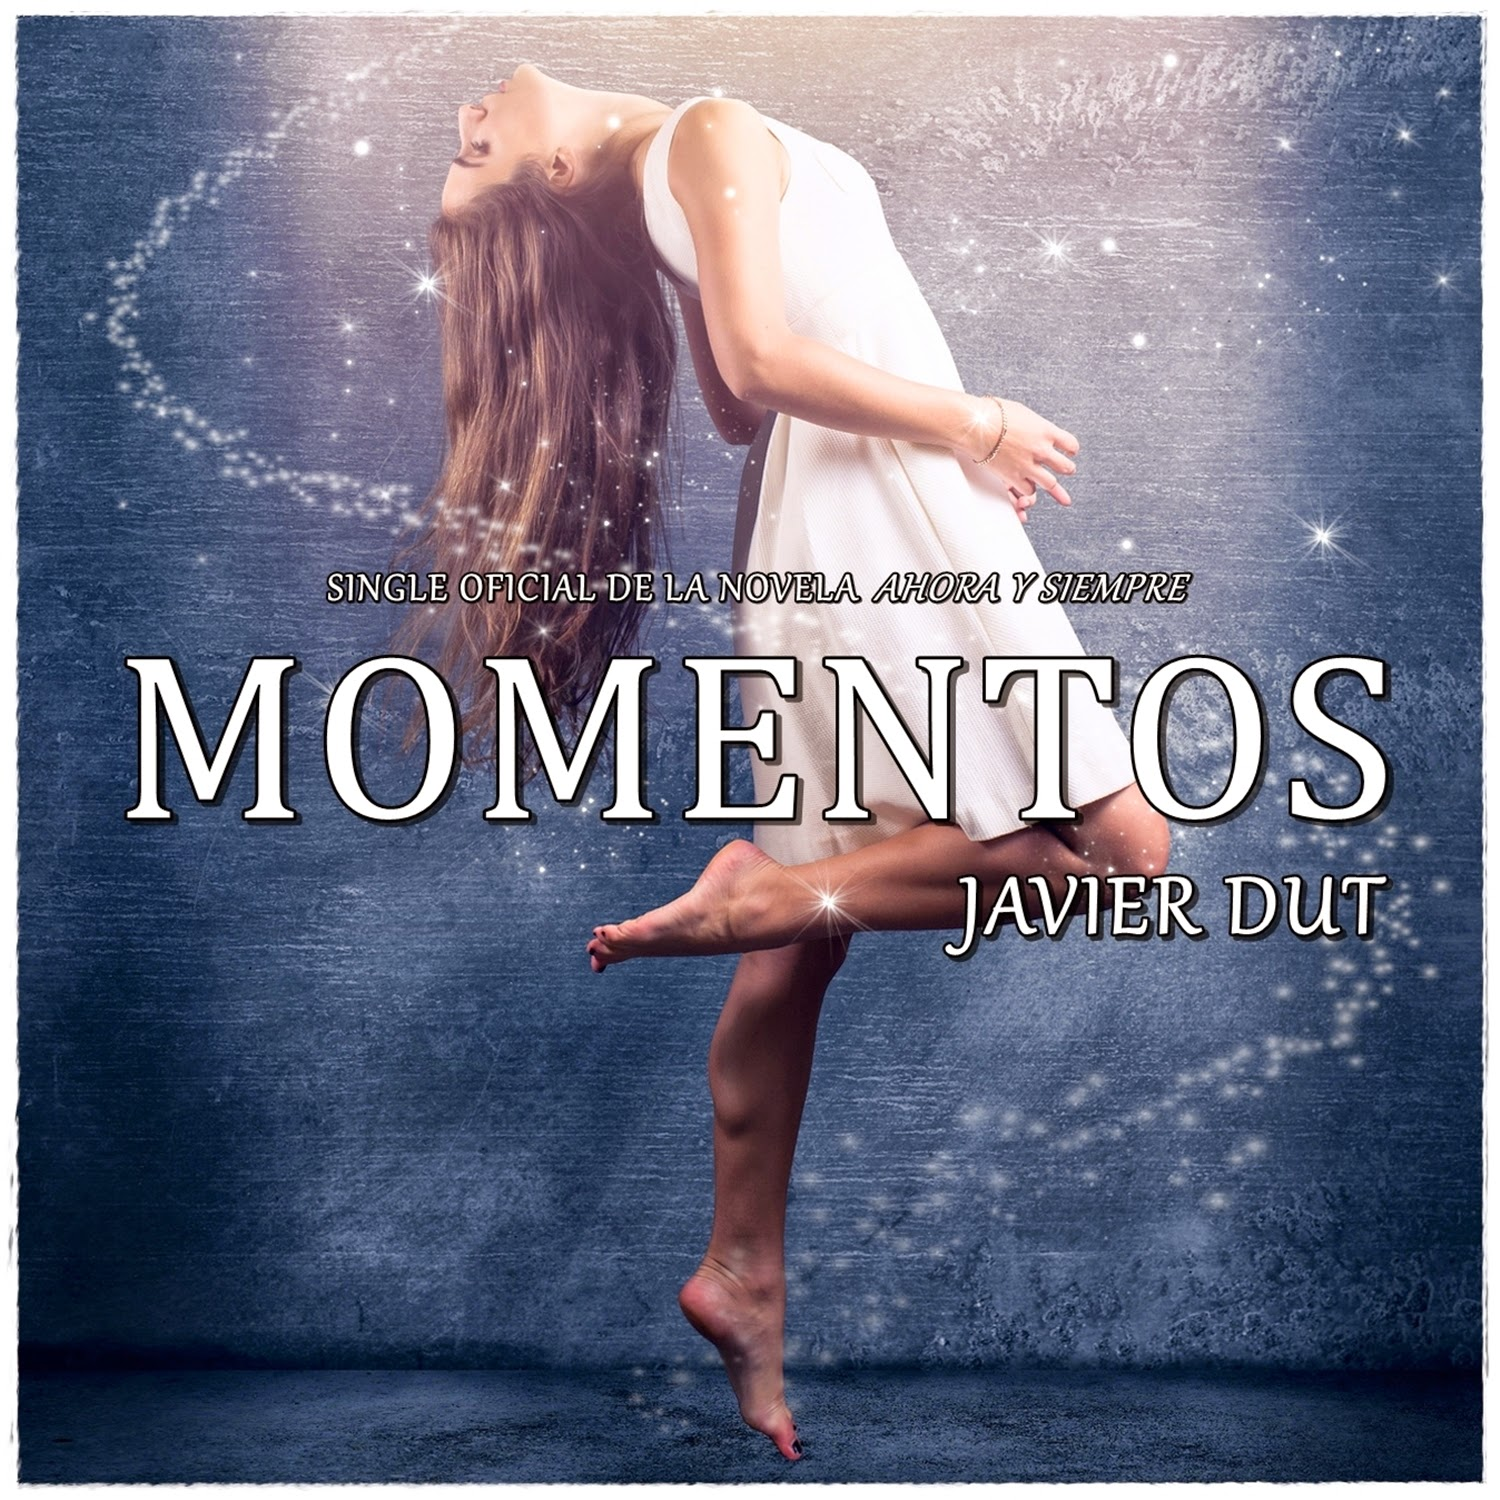 https://itunes.apple.com/es/album/momentos-single/id929967225